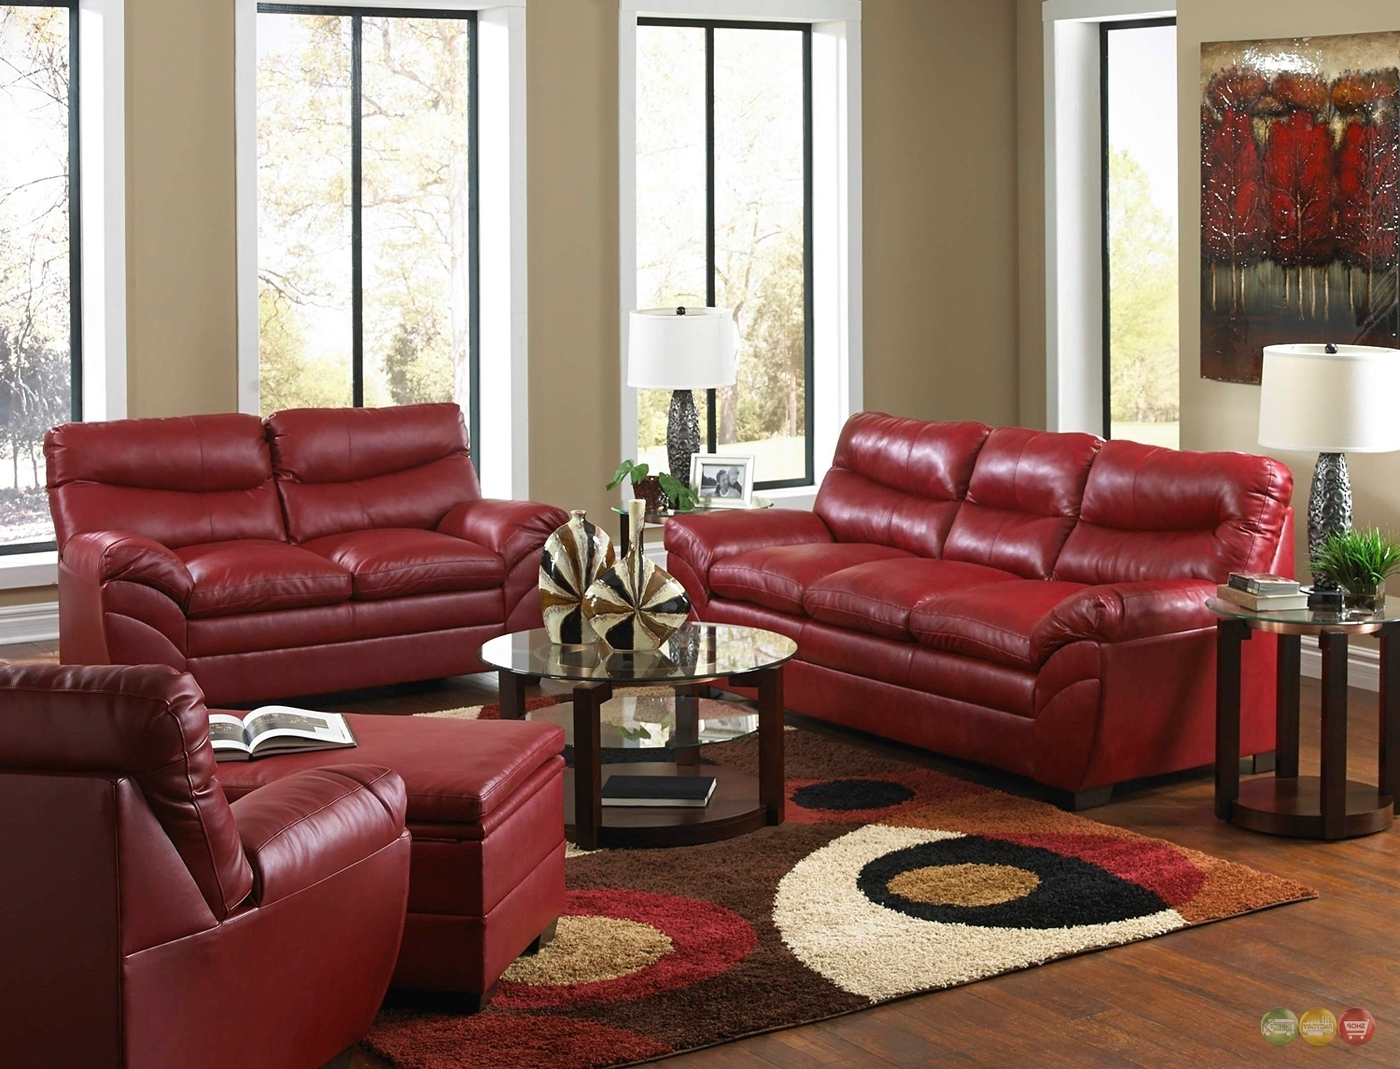 Red Leather Sofa Living Room Design (View 11 of 15)